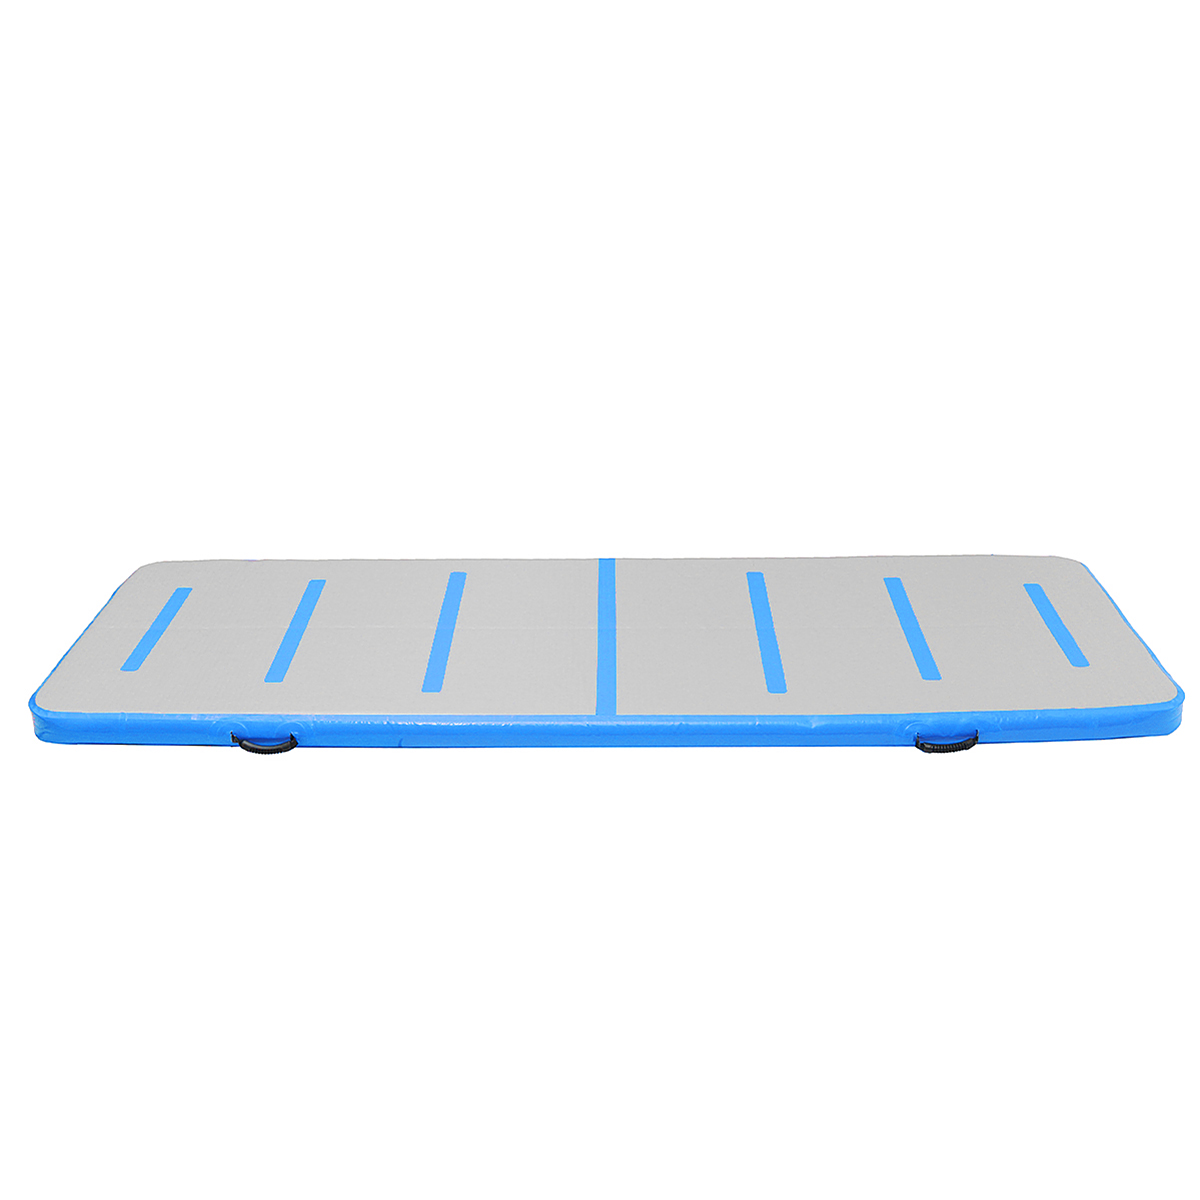 300x90x10cm Air Track Floor Home Gymnastics Inflatable Tumbling Mat with Electric Pump